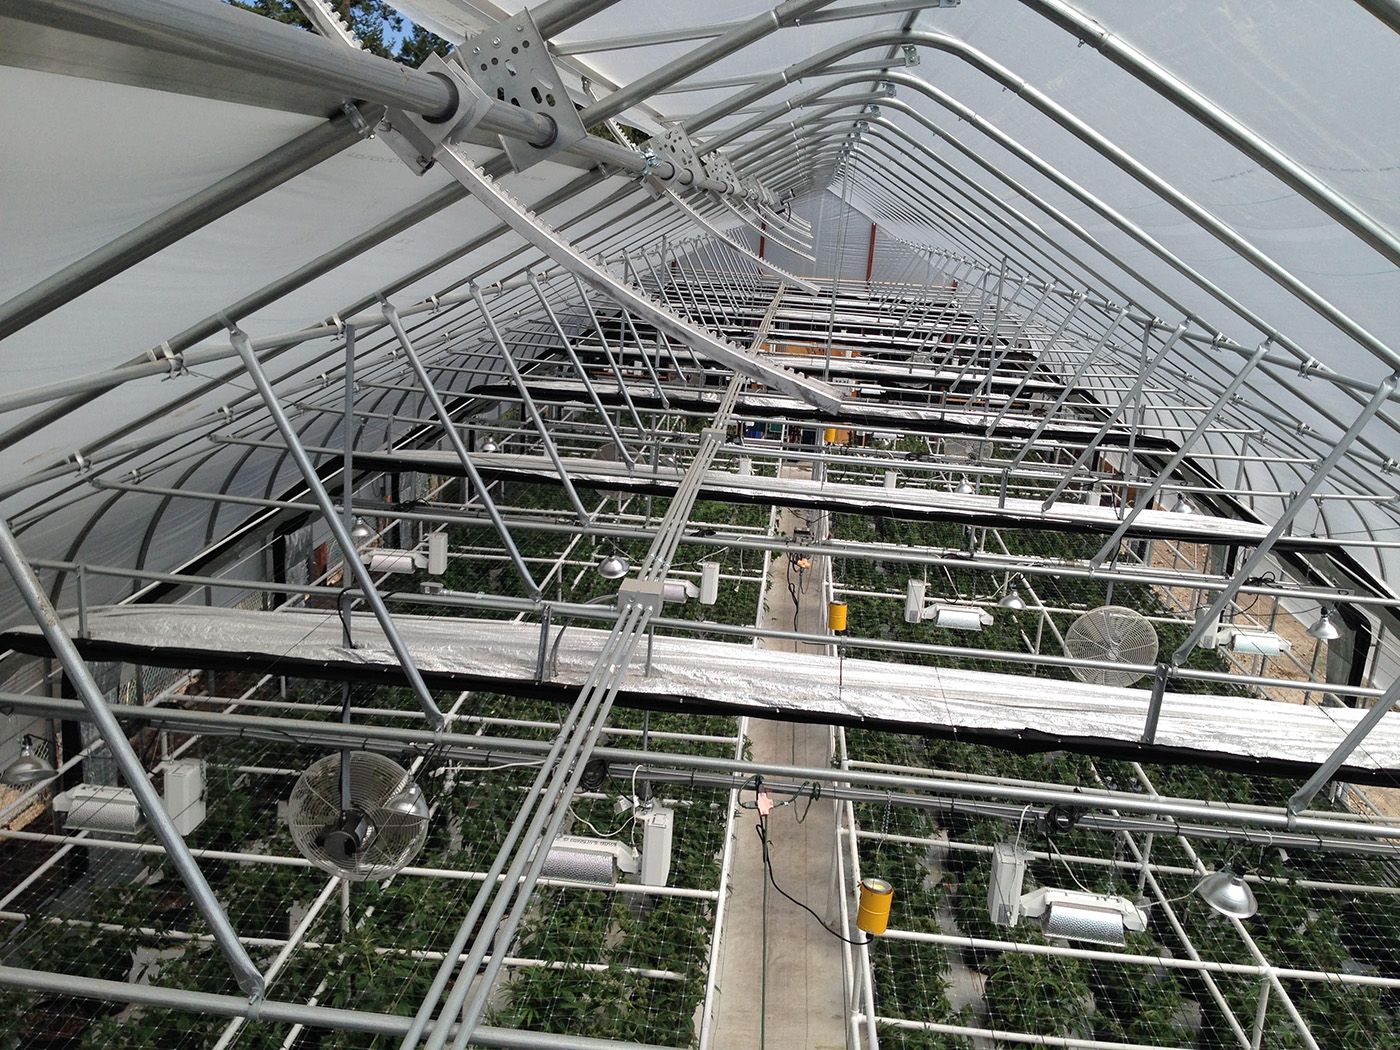 Shade Cloth Overview in Greenhouse